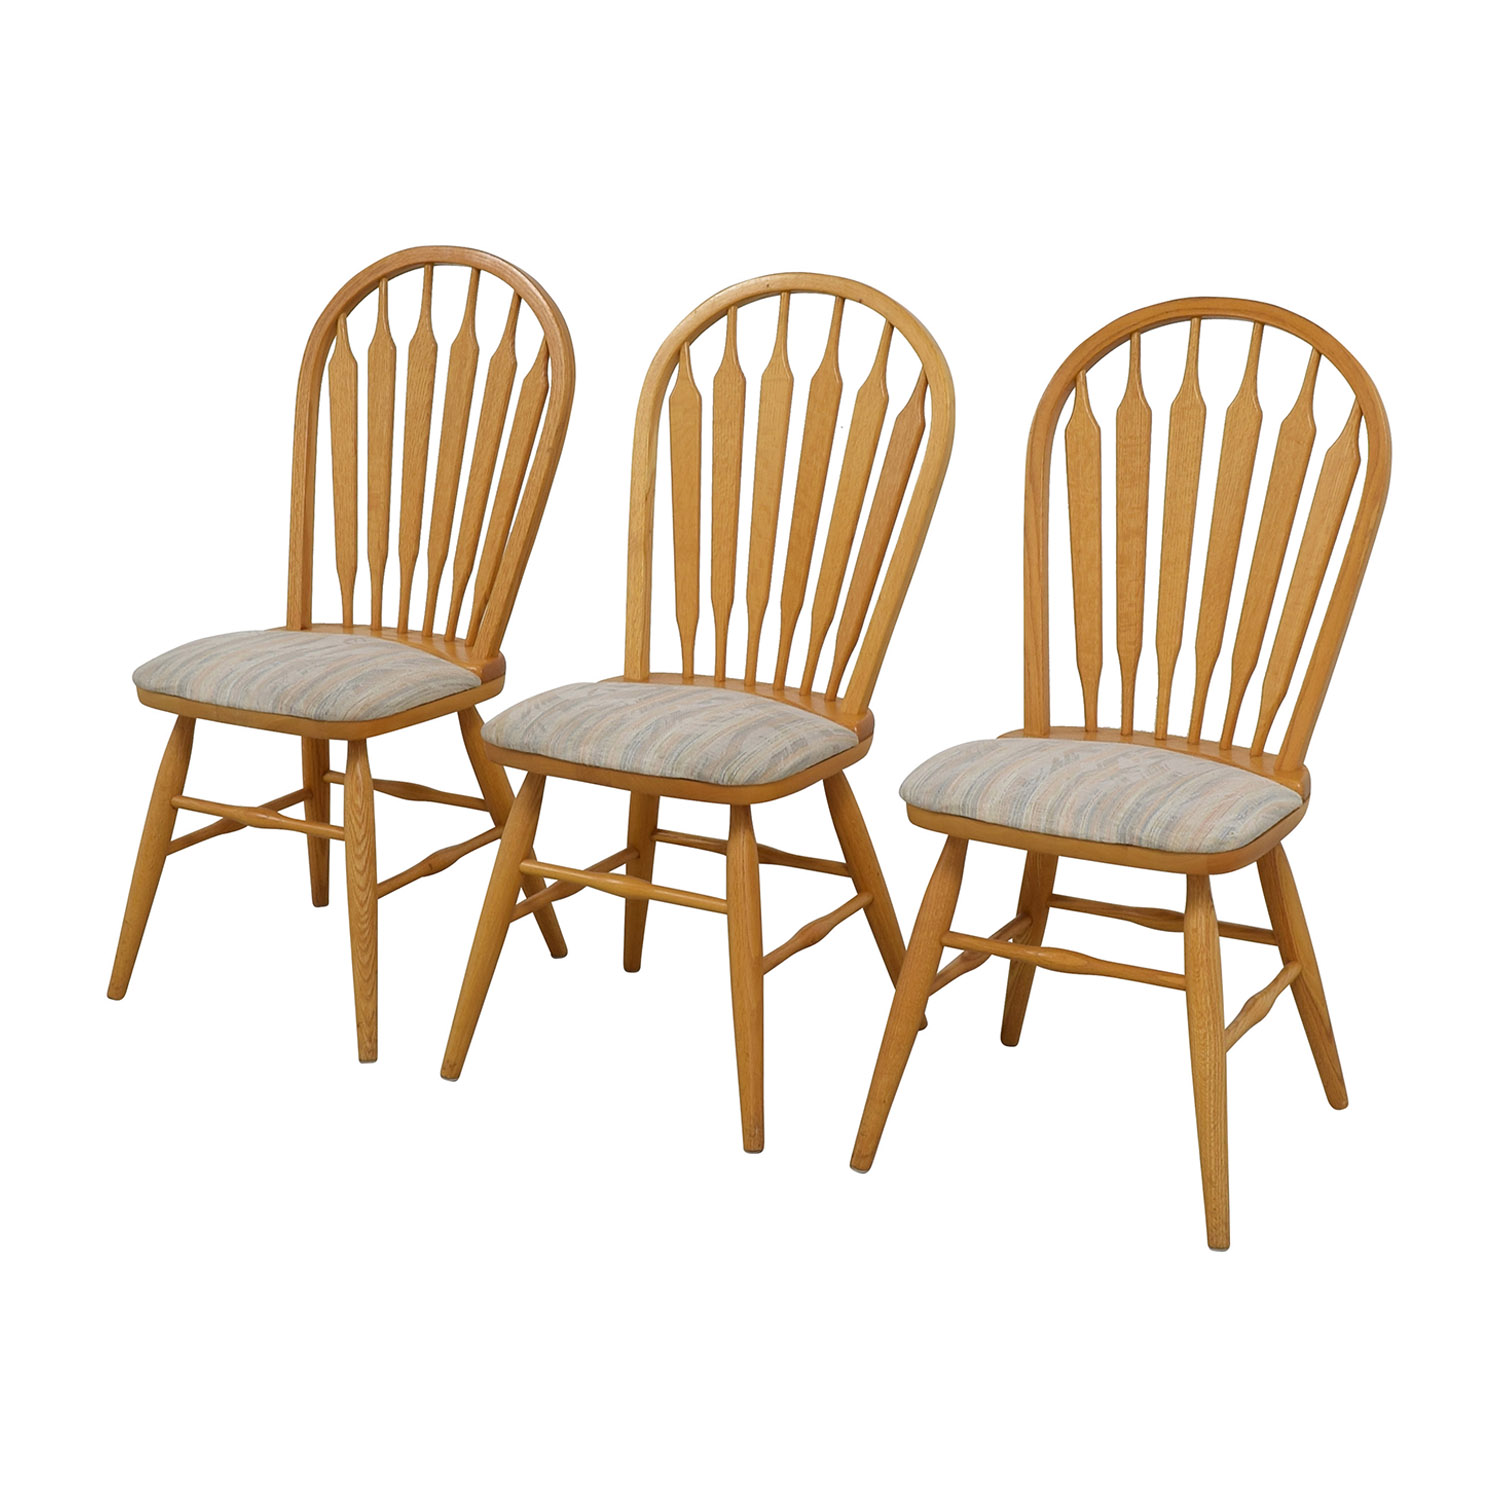 Kitchen Chairs For Sale: Dinaire Dinaire Kitchen Chairs With Cushions